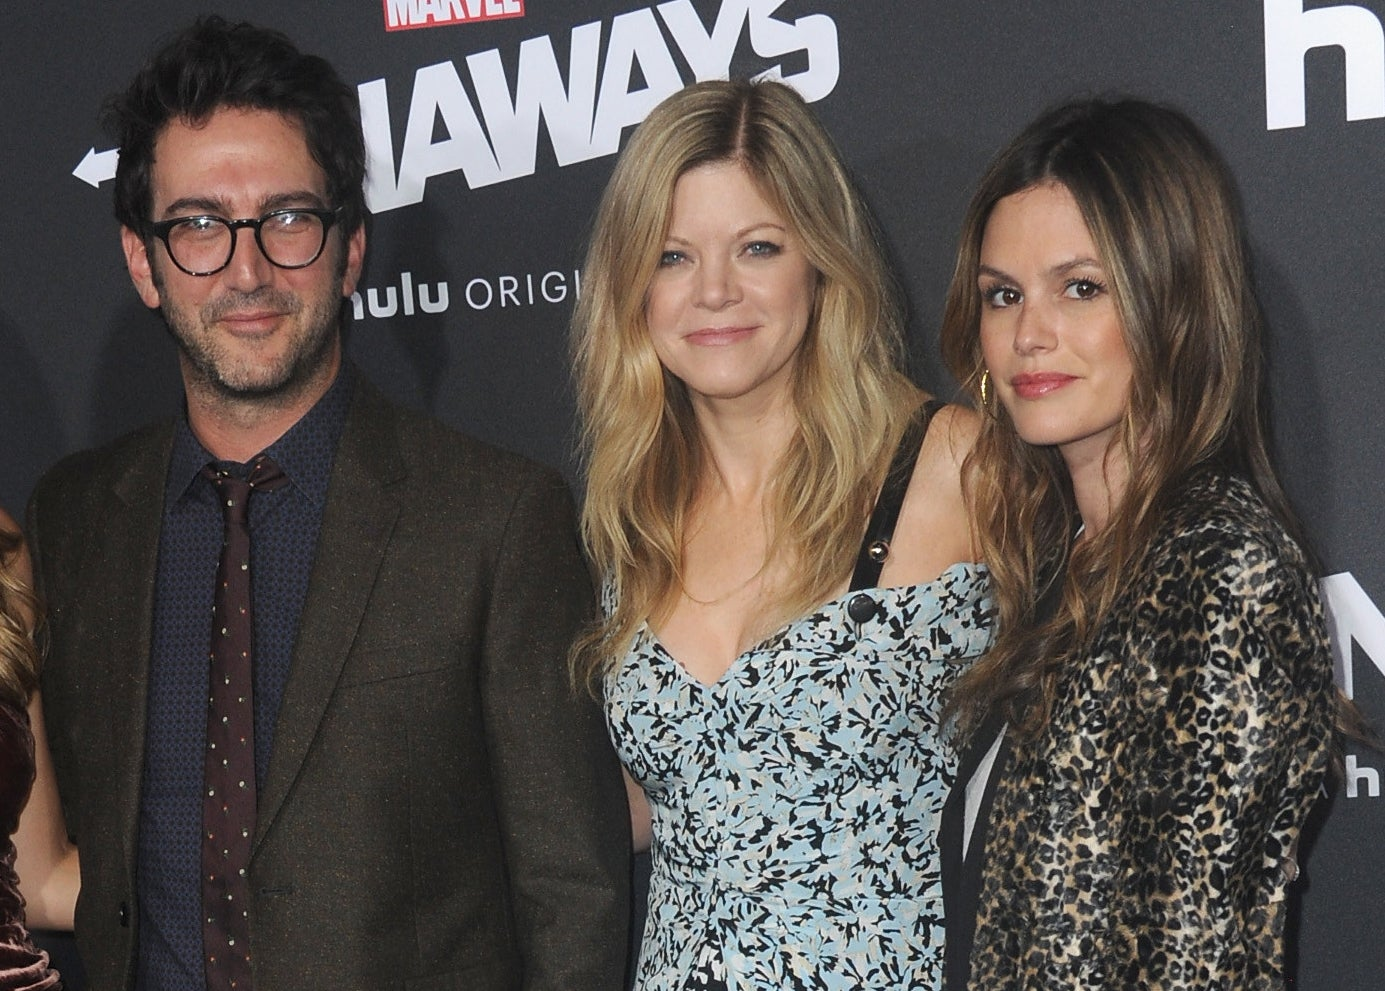 Rachel poses with Stephanie and Josh at an event